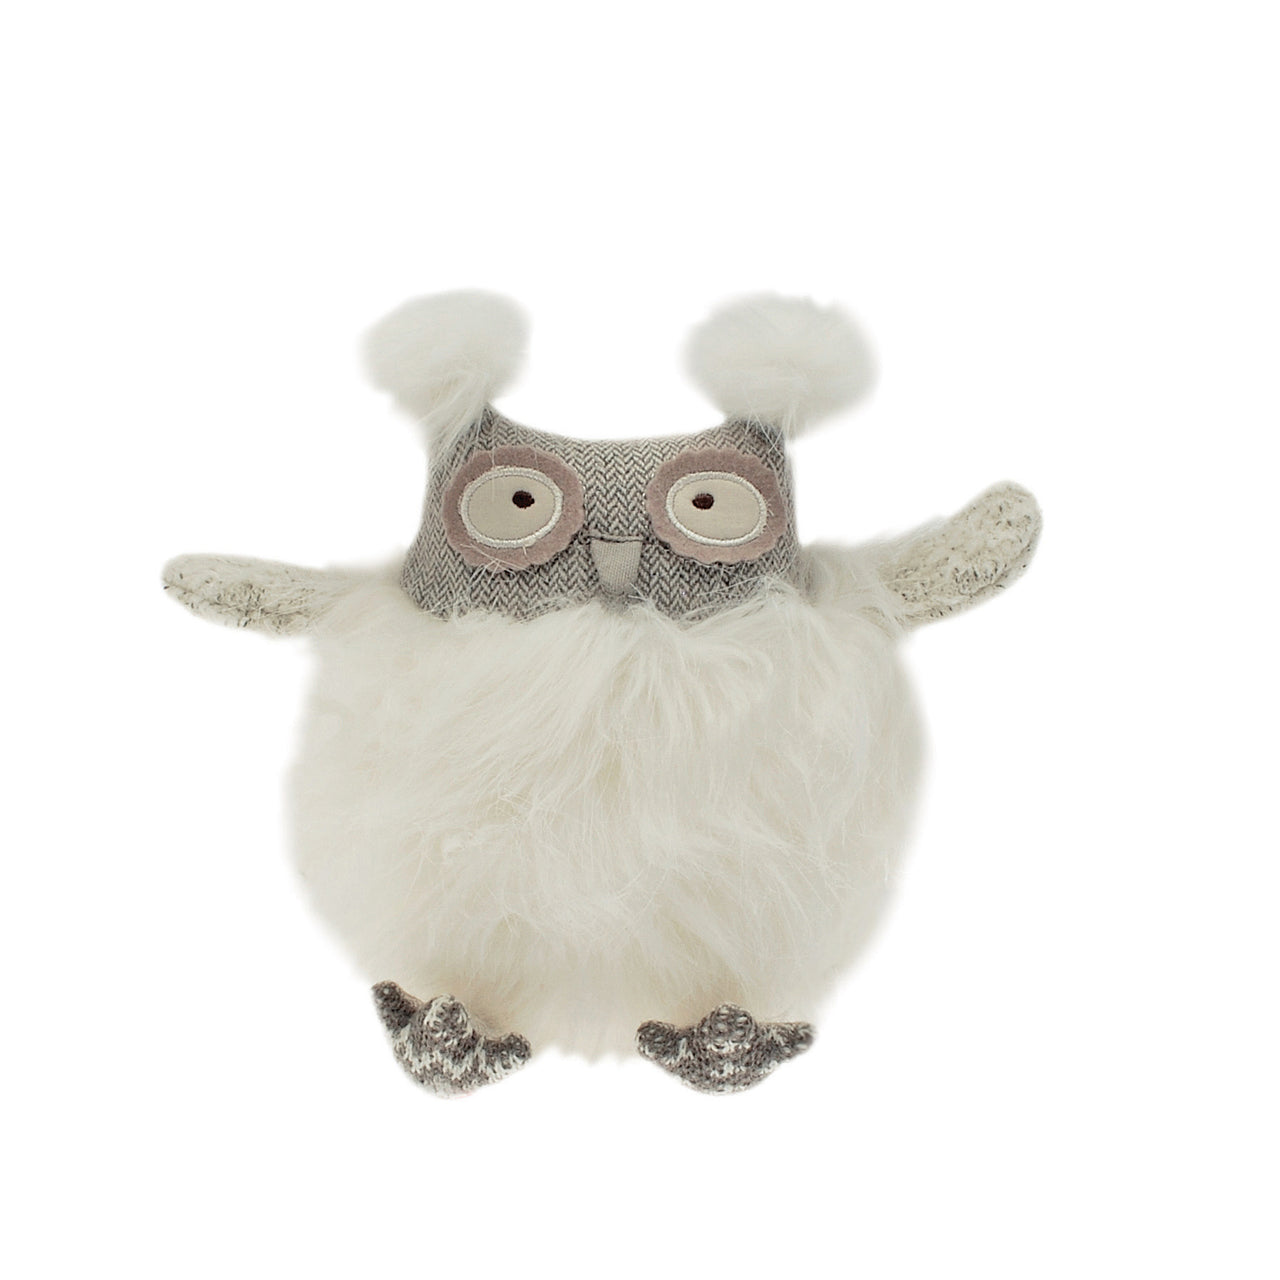 Oswald Owl Soft Toy - Kids Room Decor | Toys Gifts | Childrens Interiors | Rooms for Rascals